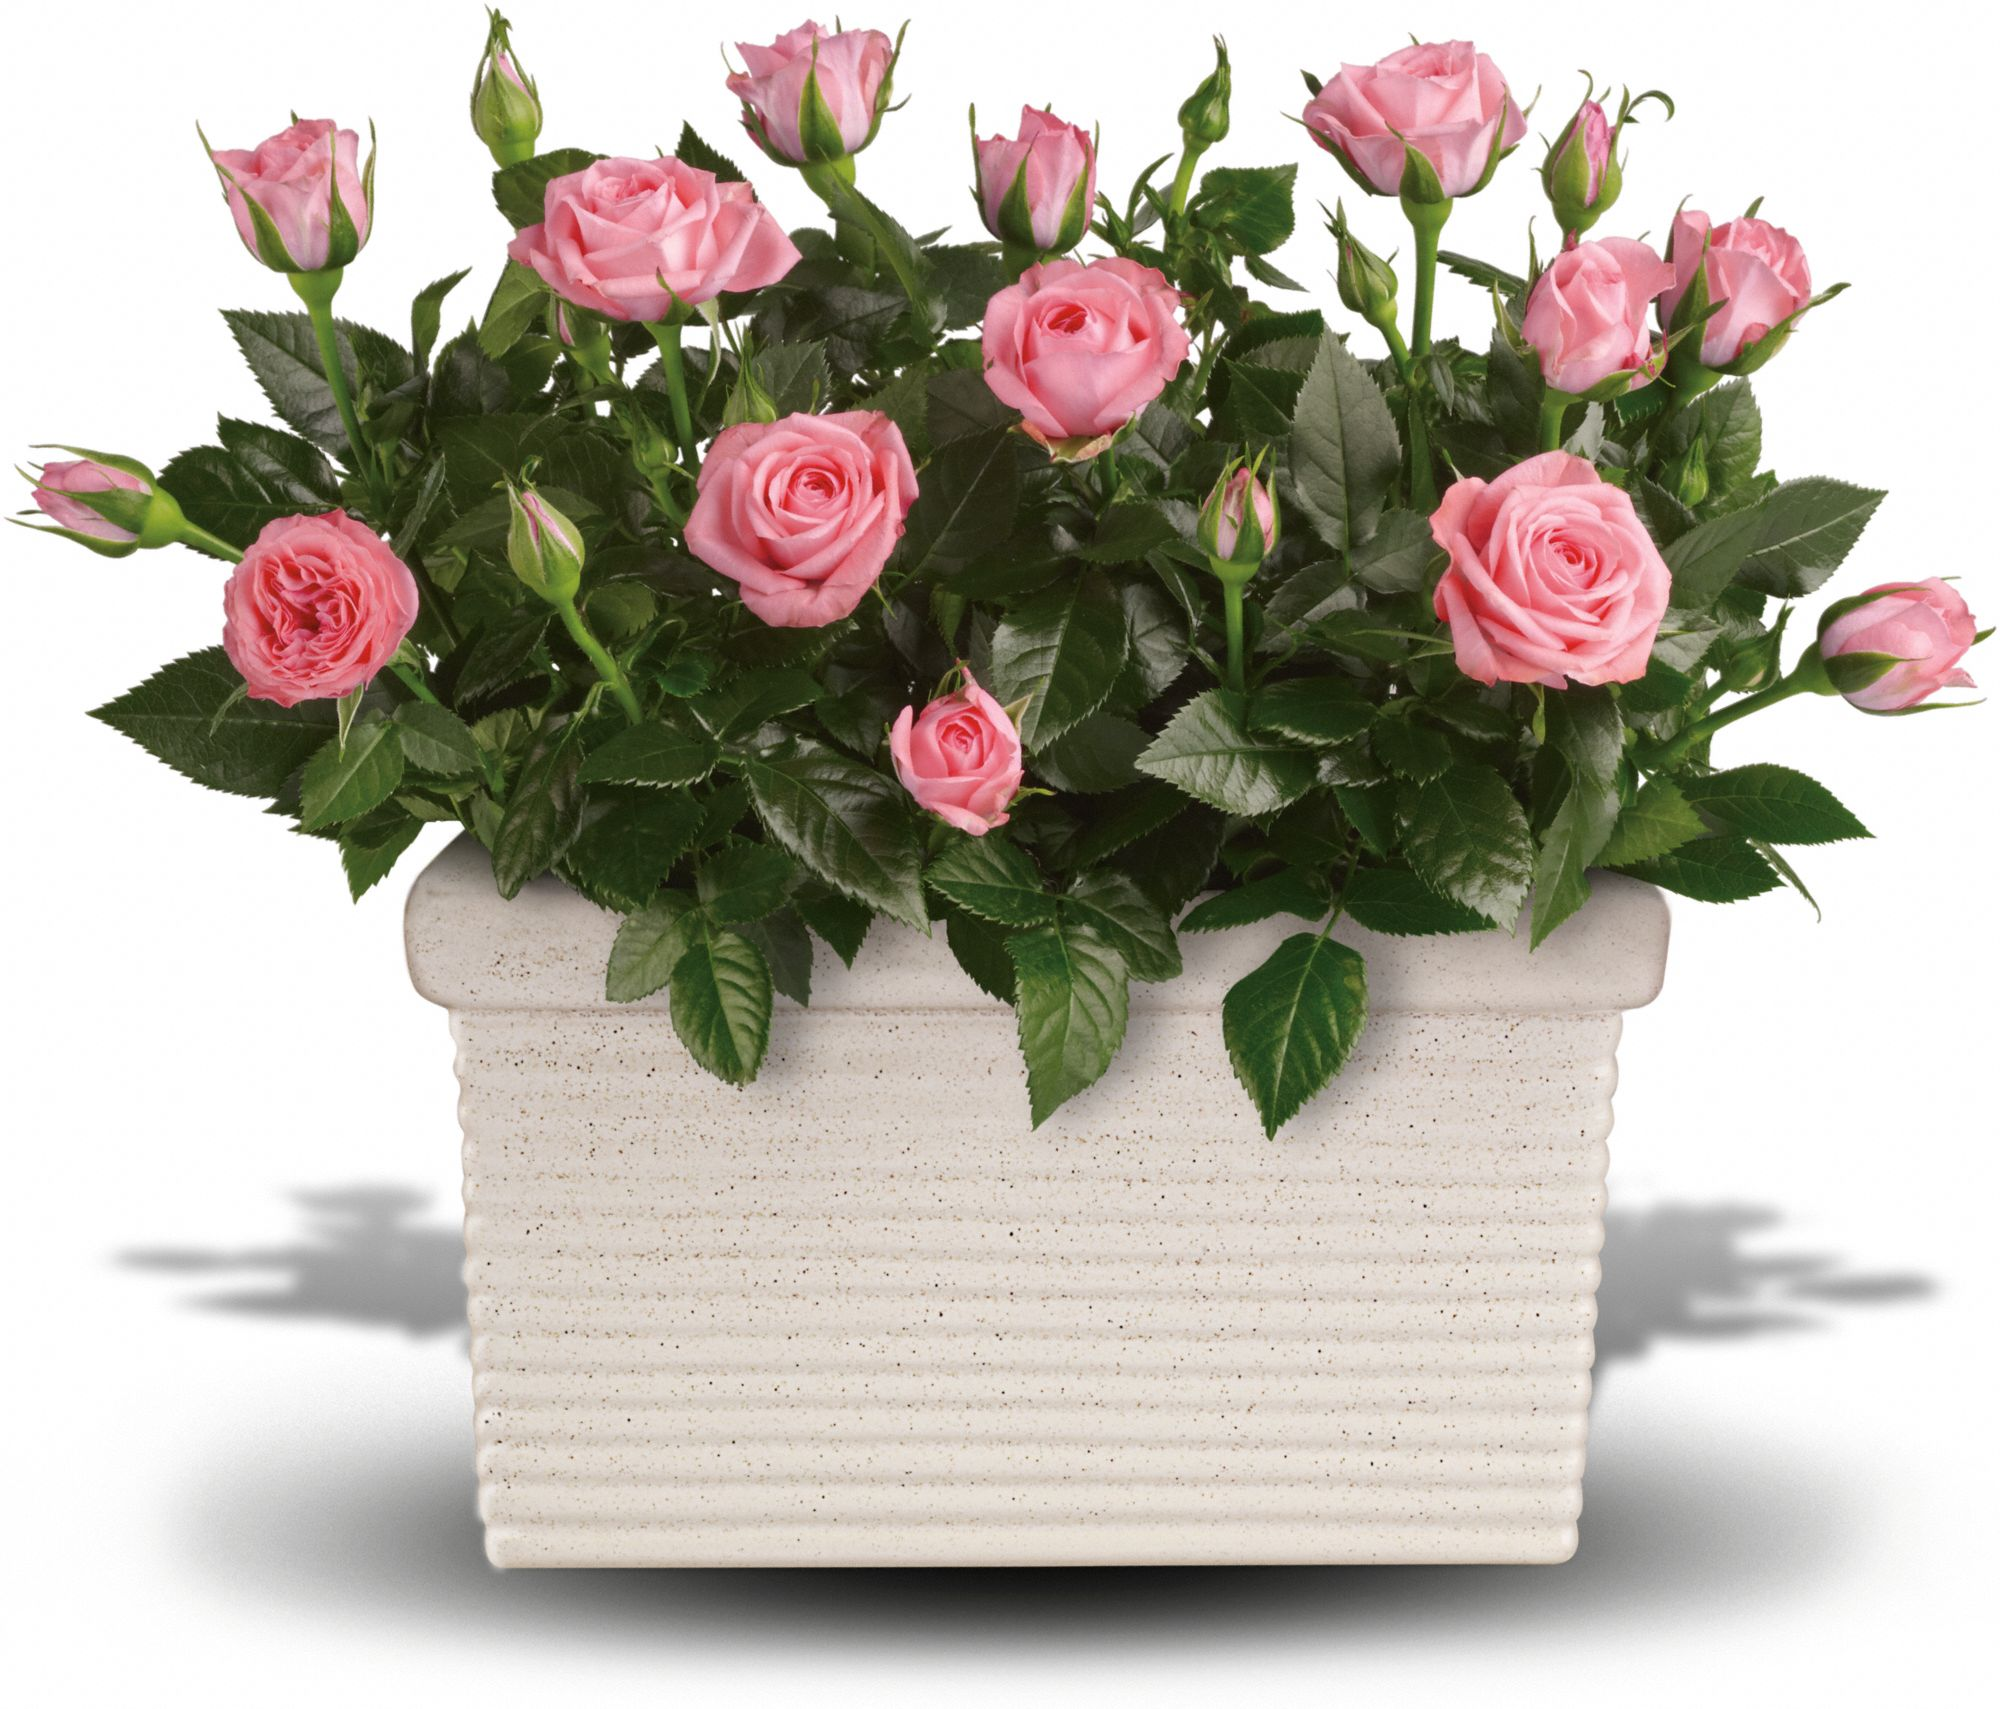 Guide for Growing Miniature Roses Indoors Miniature Rose